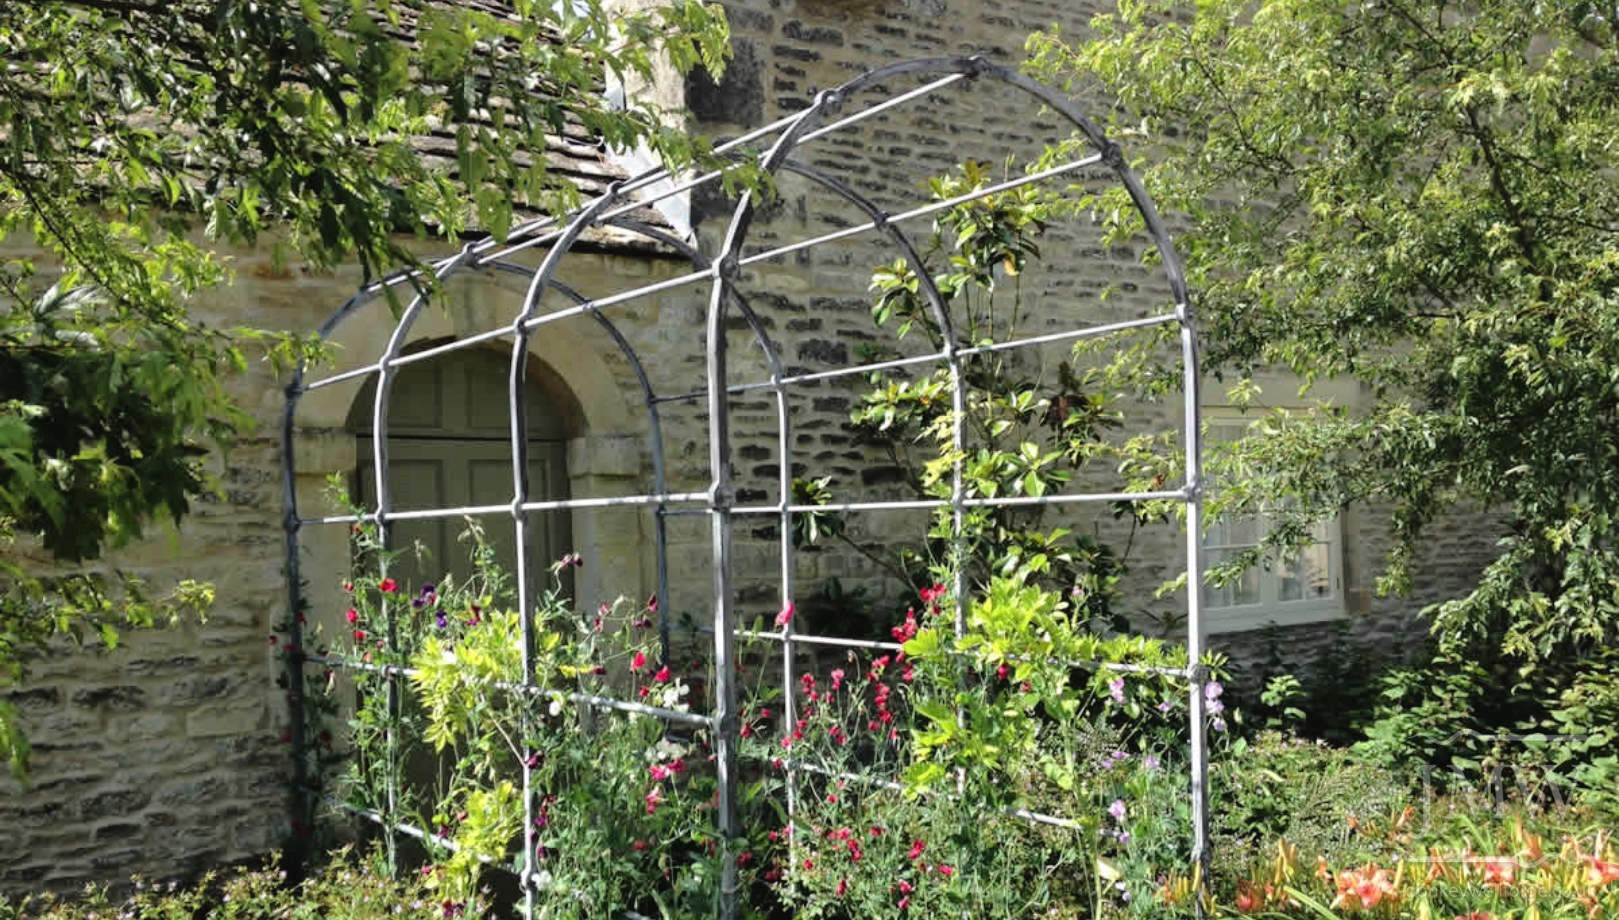 punched-bar-riveted-ironwork-garden-arch-donkeywell-forge